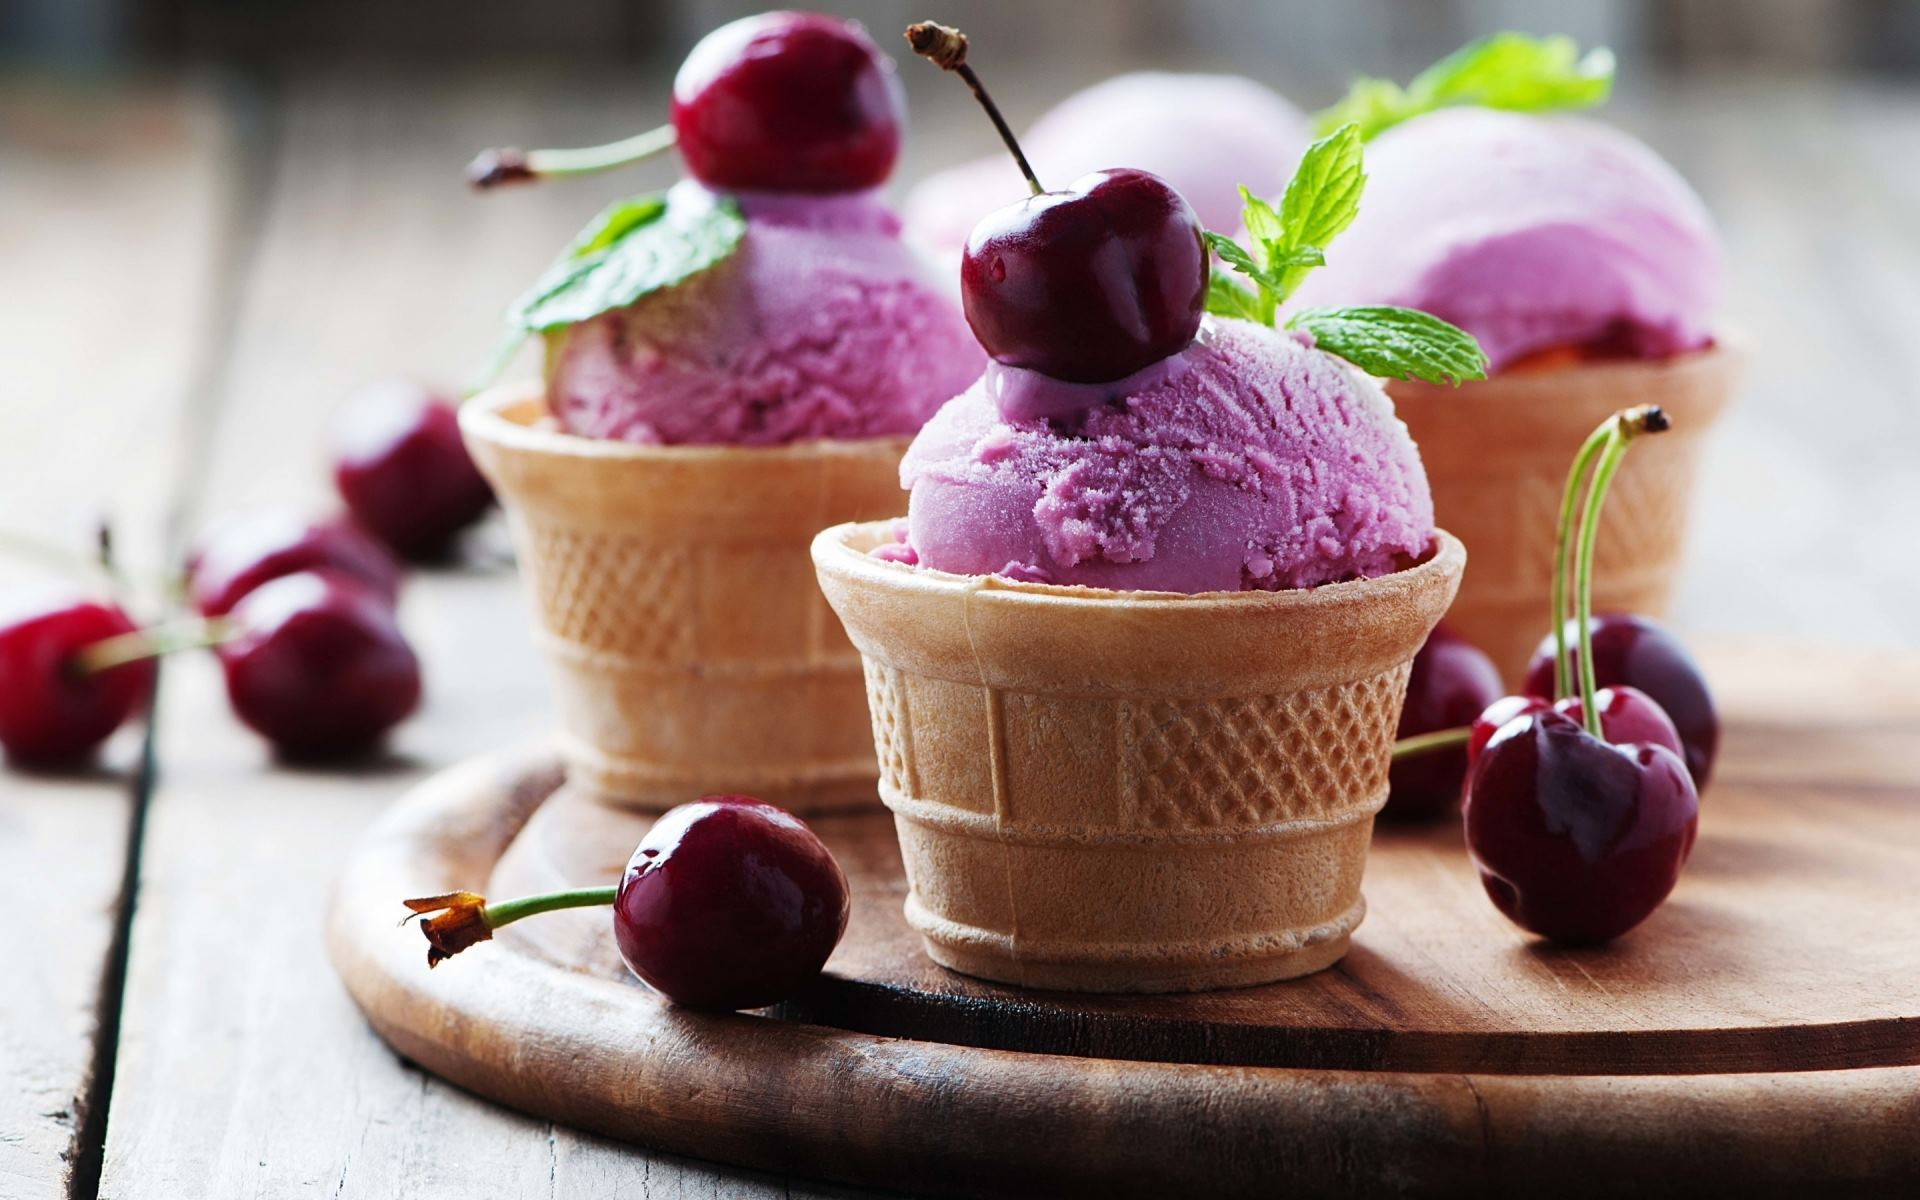 Wallpaper-HD-Cherry-Ice-Cream